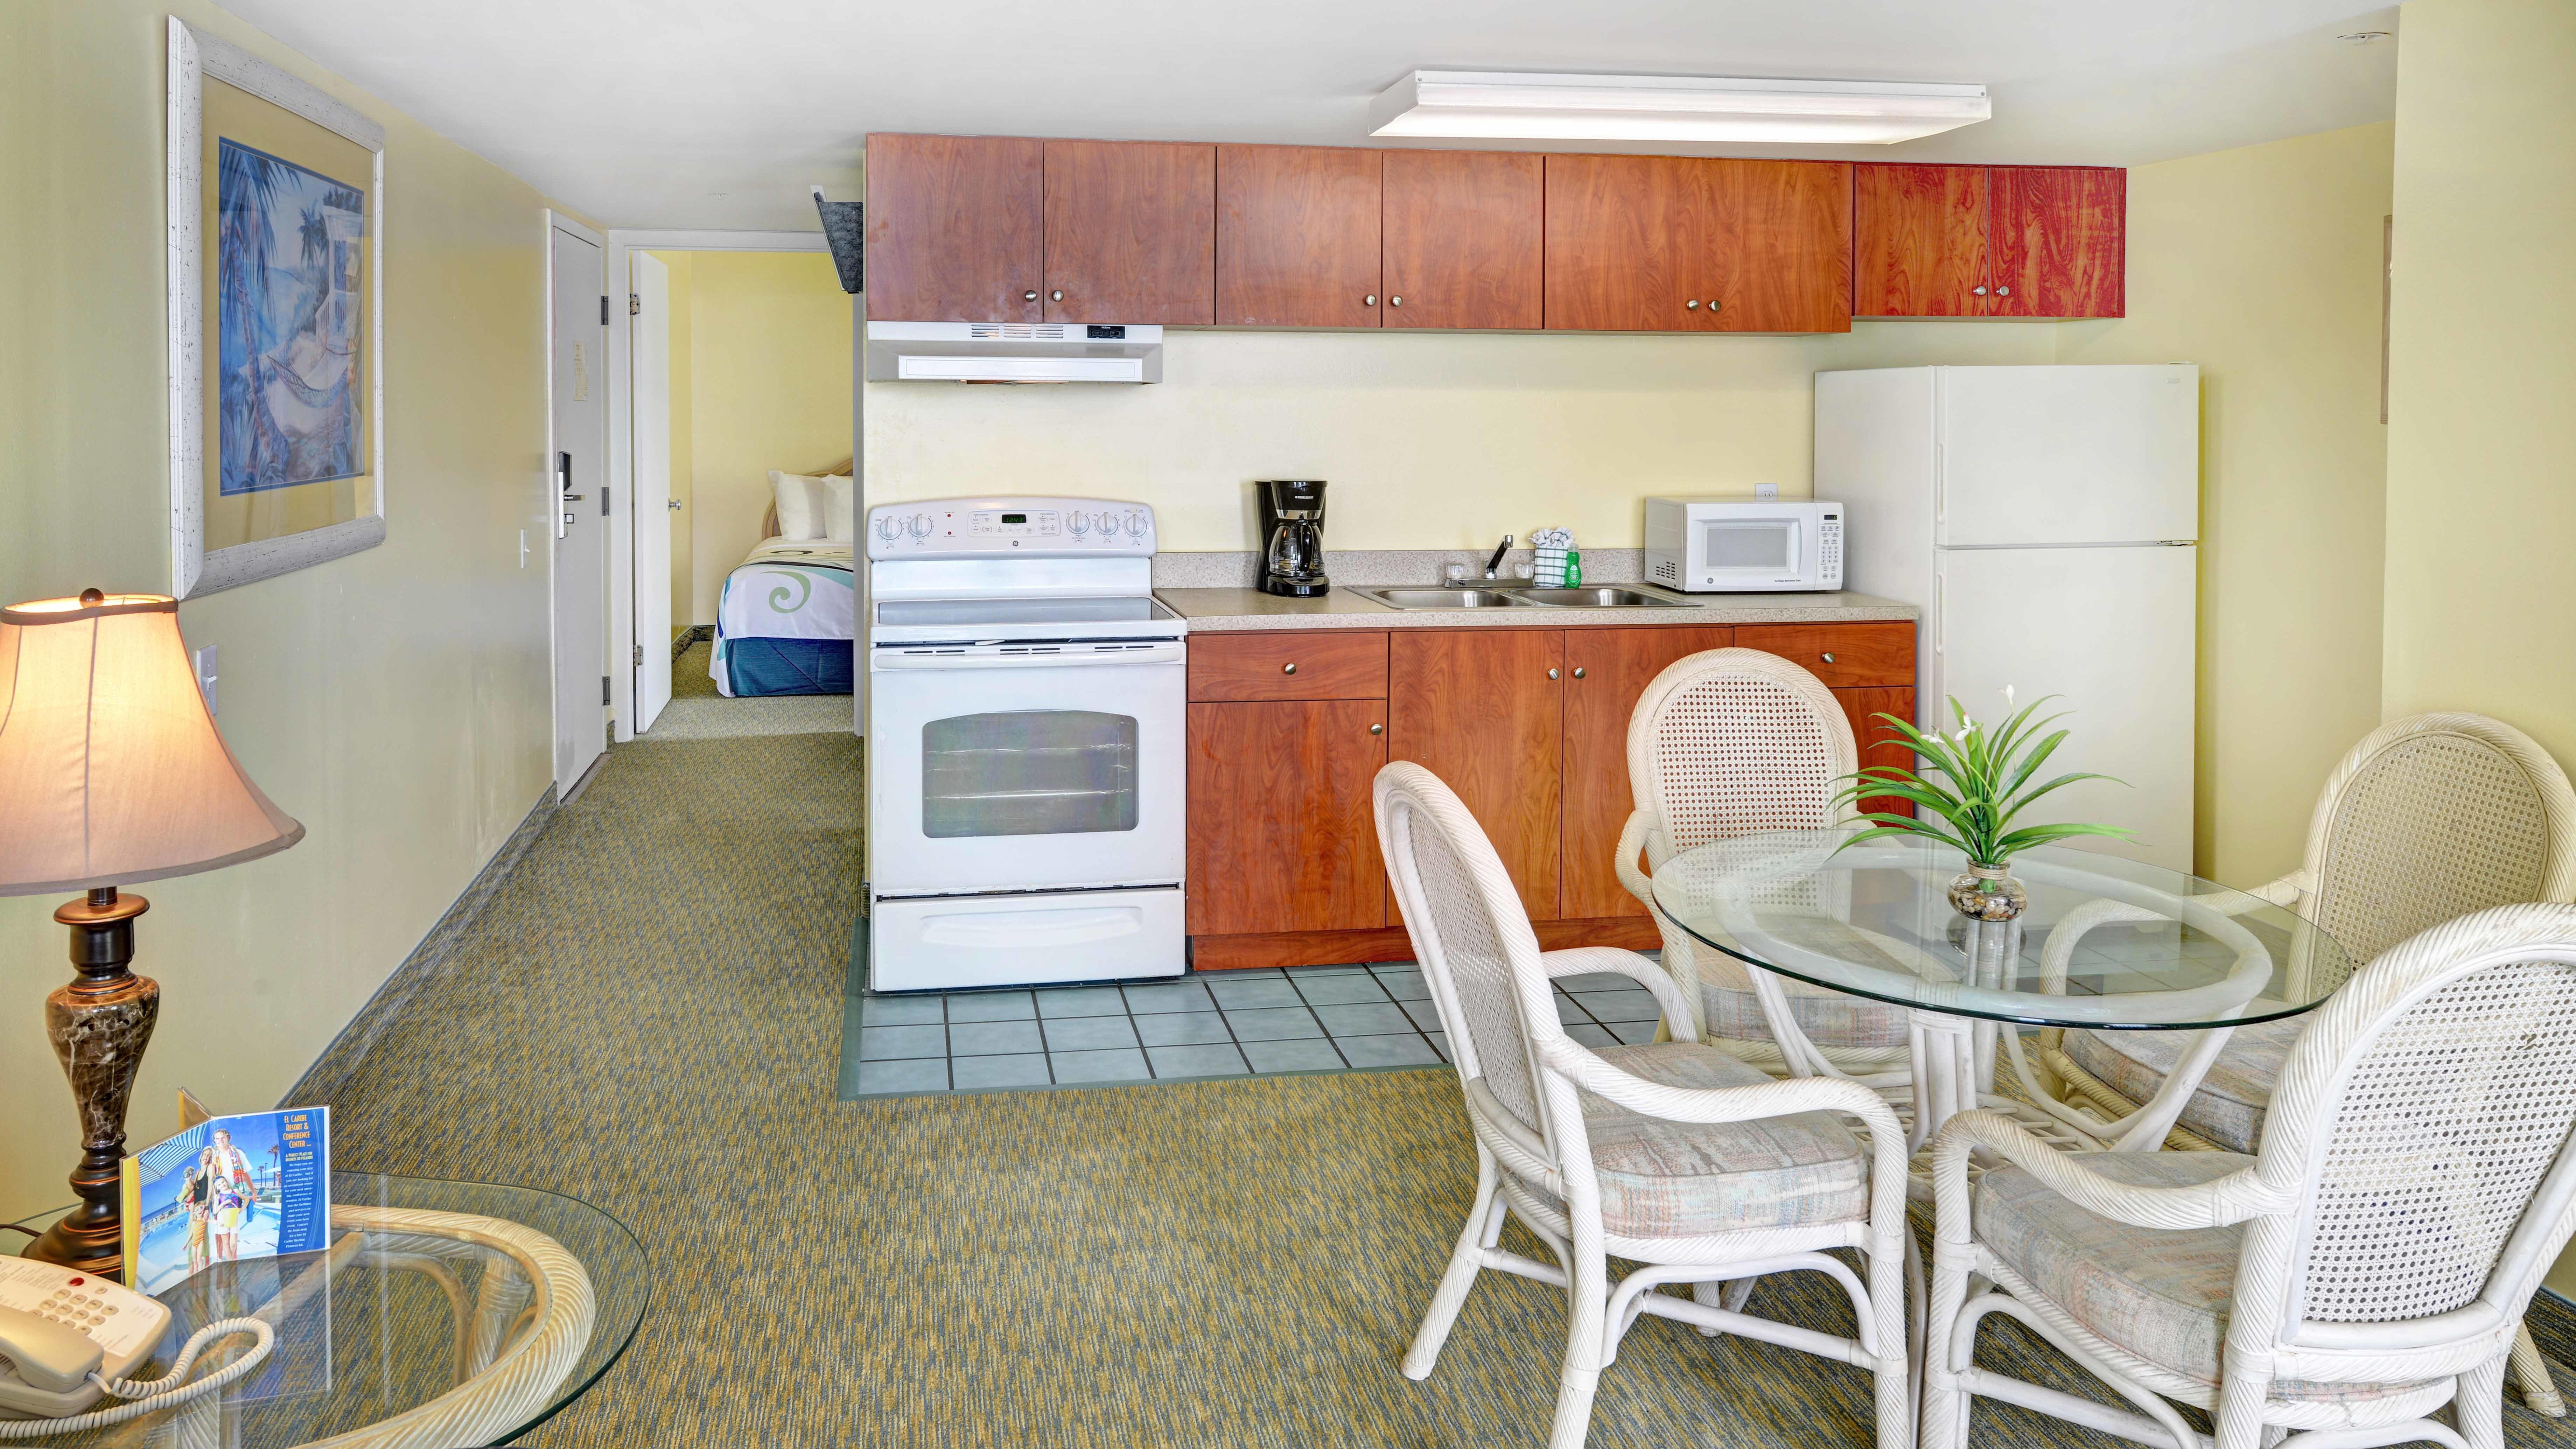 Living and kitchen area of hotel room.